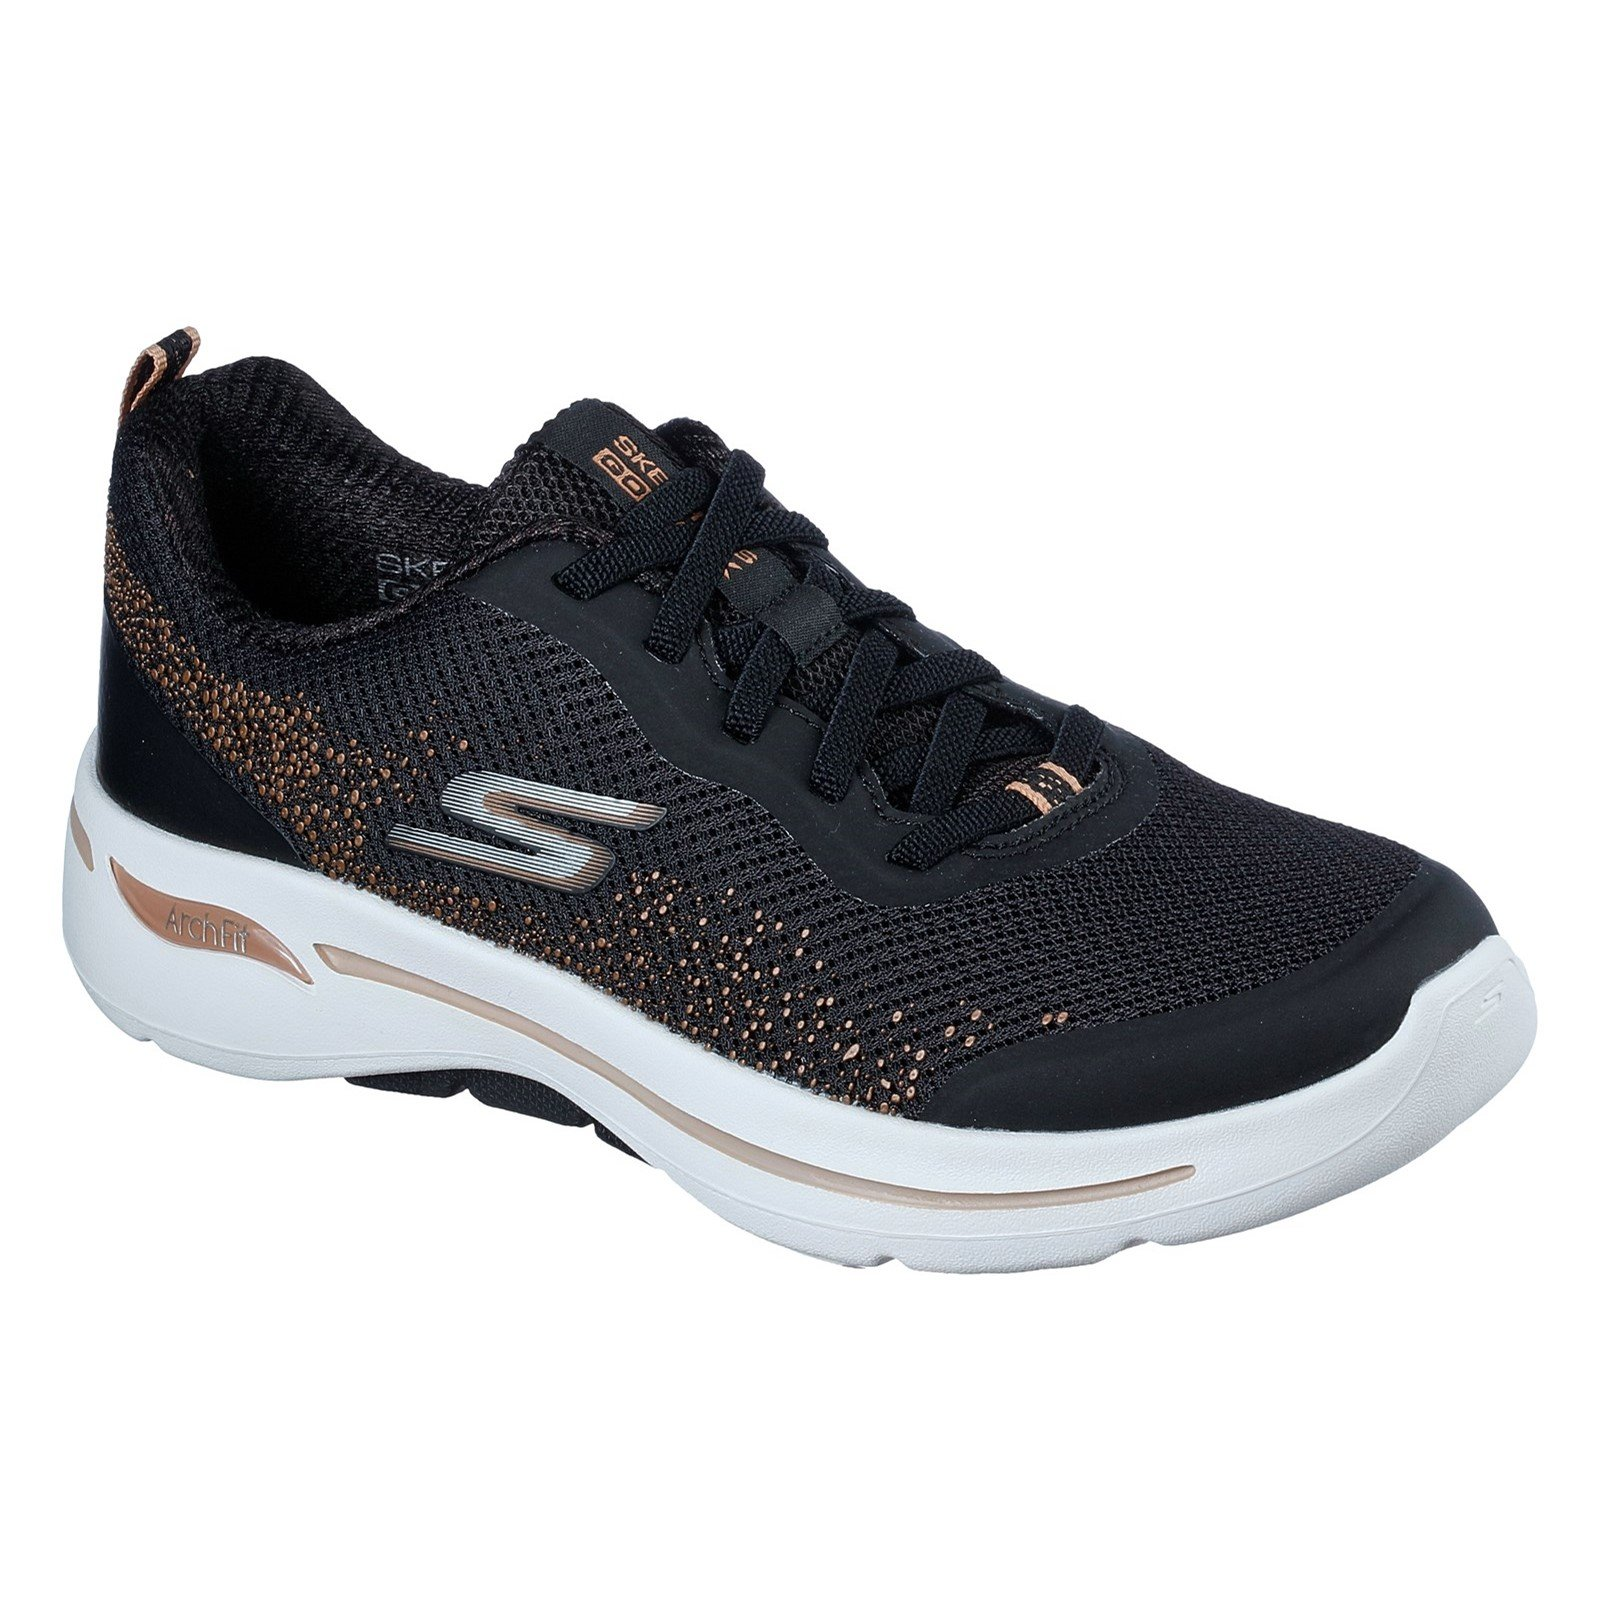 Skechers Women's Go Walk Arch Fit Flying Stars Trainer Various Colours 32841 - Black/Gold 4